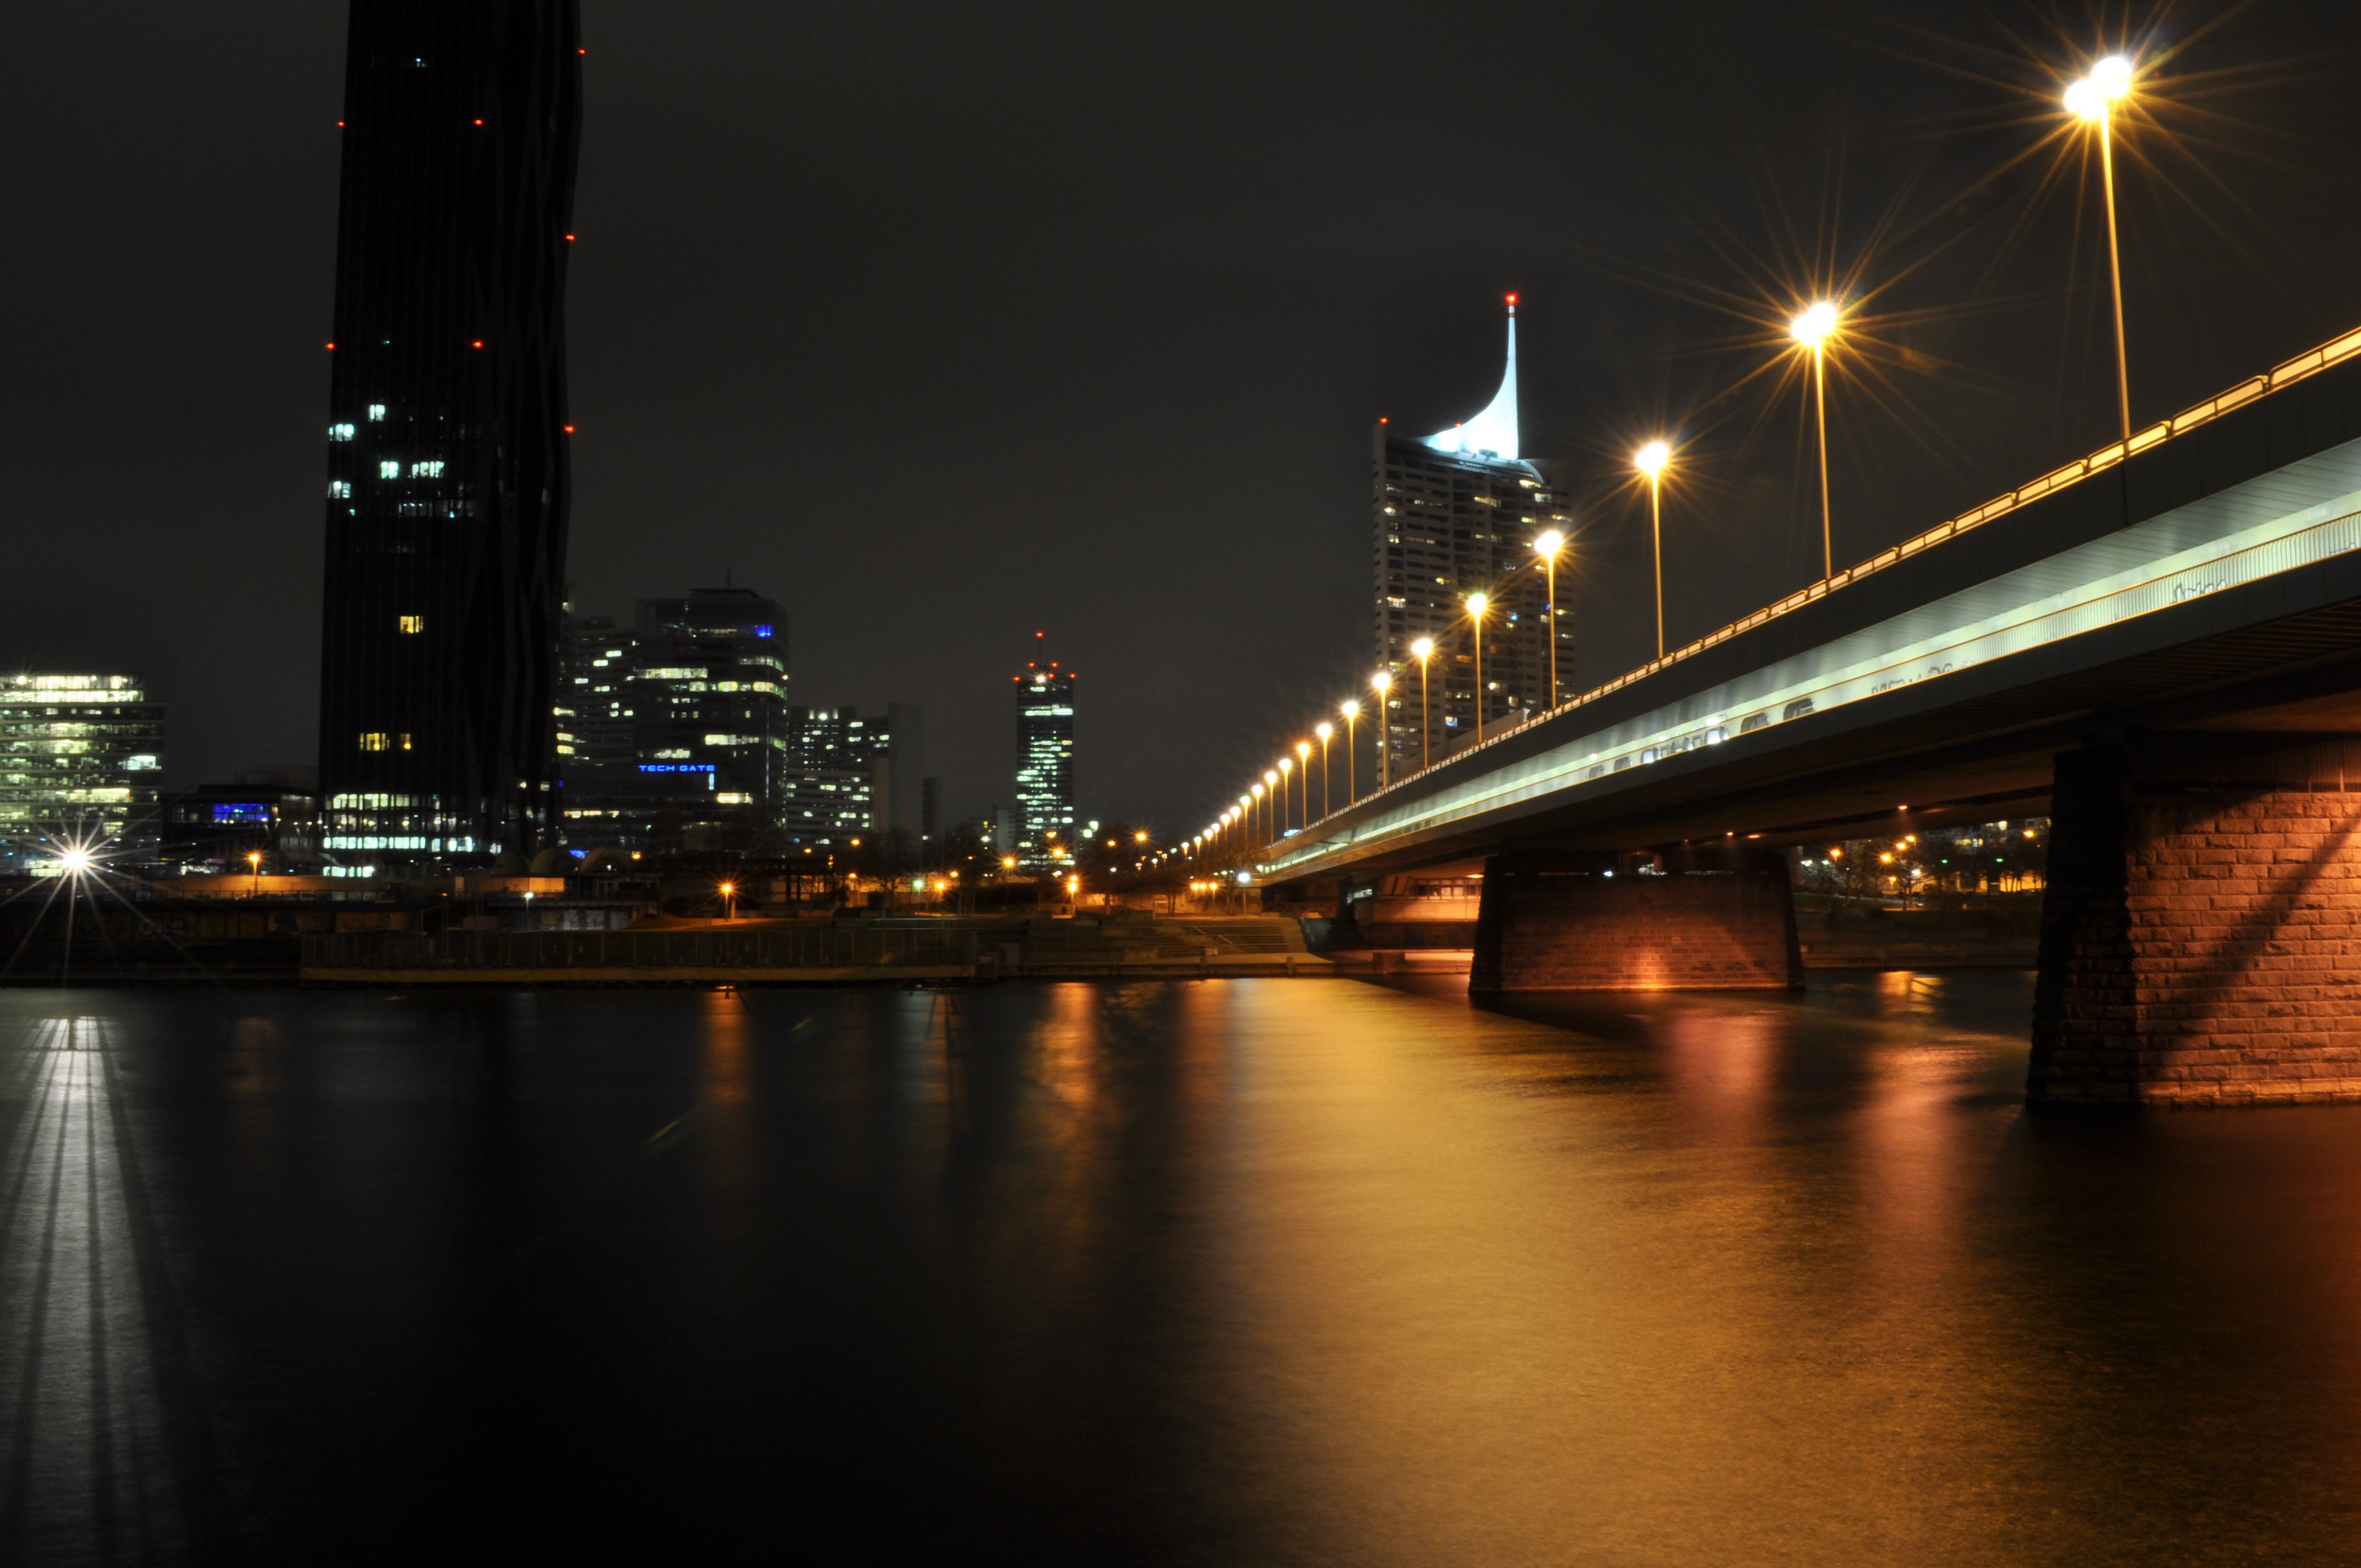 Bridge With Street Lights